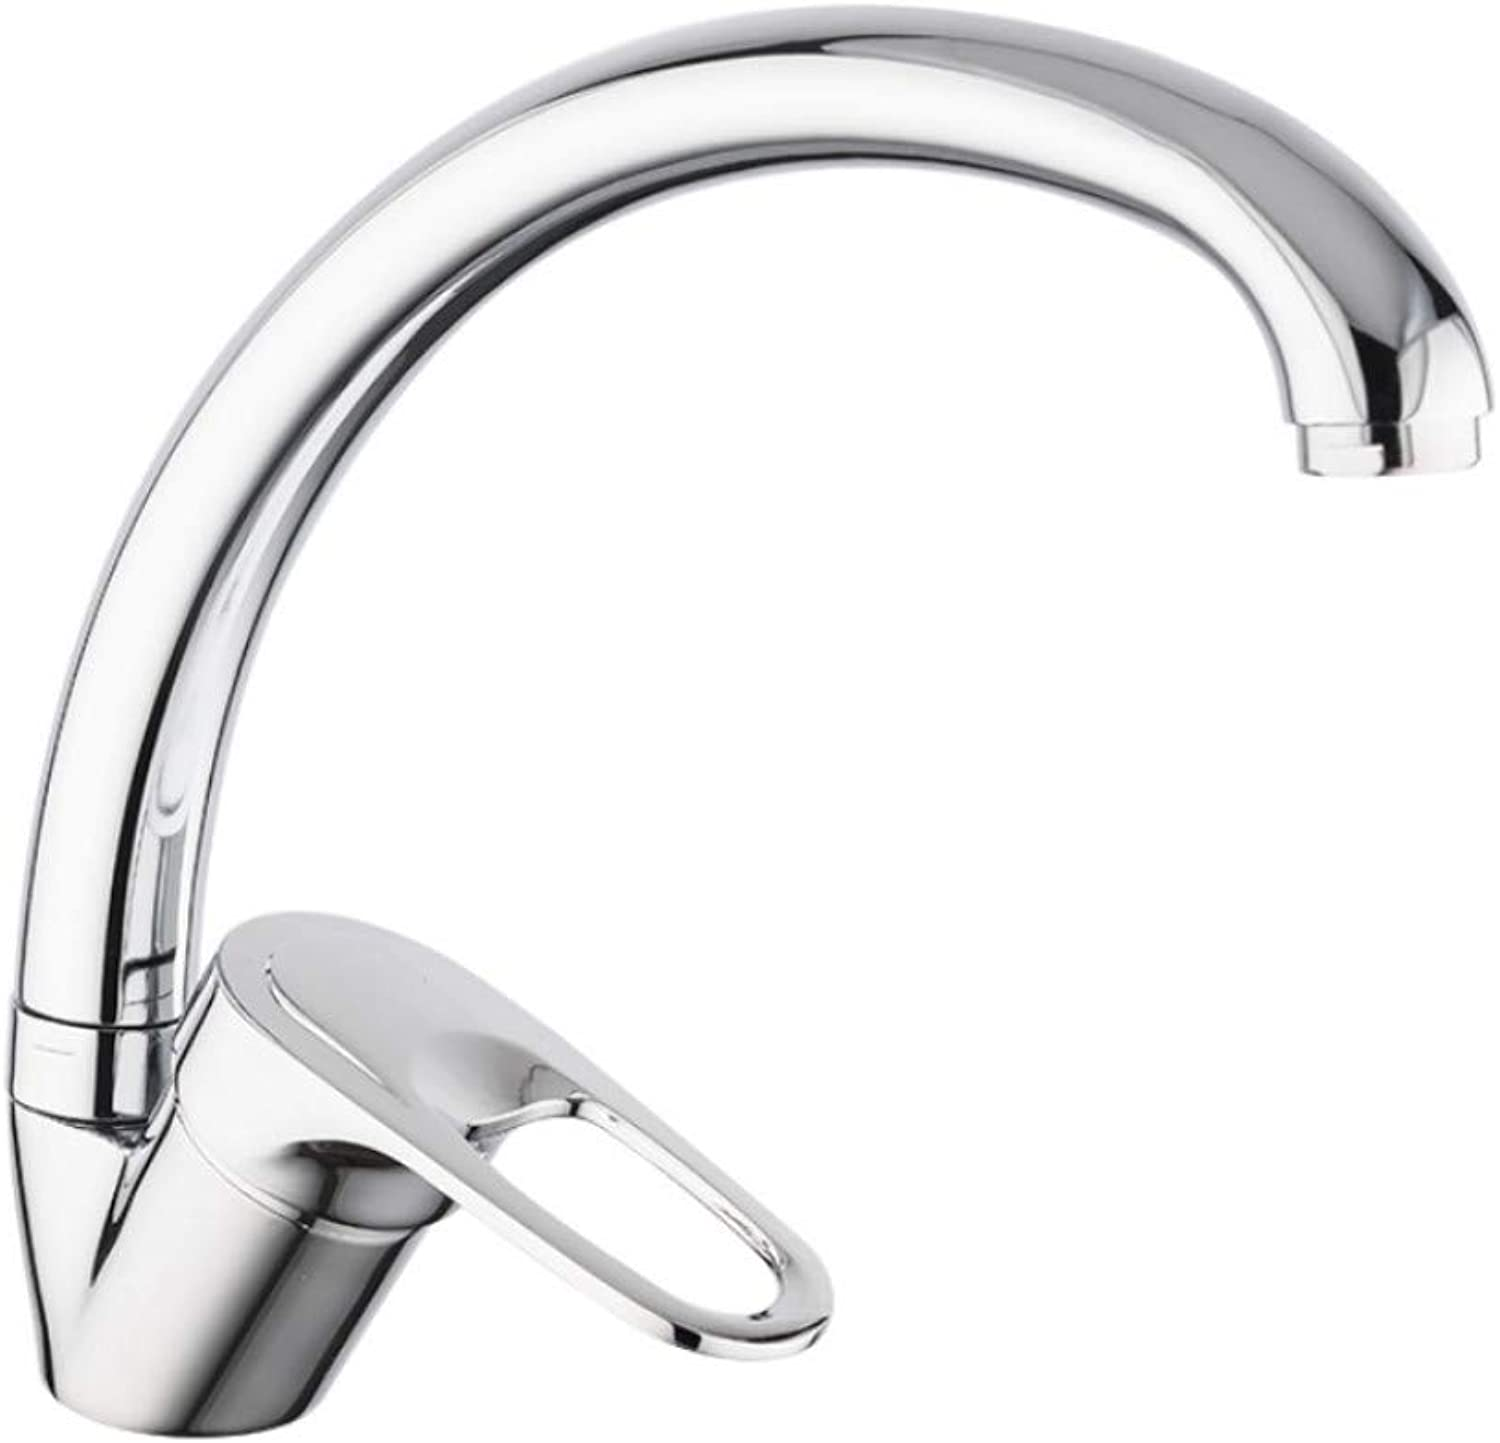 Ayhuir Basin Faucet Chrome Bathroom Sink Faucet Basin Mixer Water Tap Deck Mount Waterfall Sink Faucet Water Mixer Water